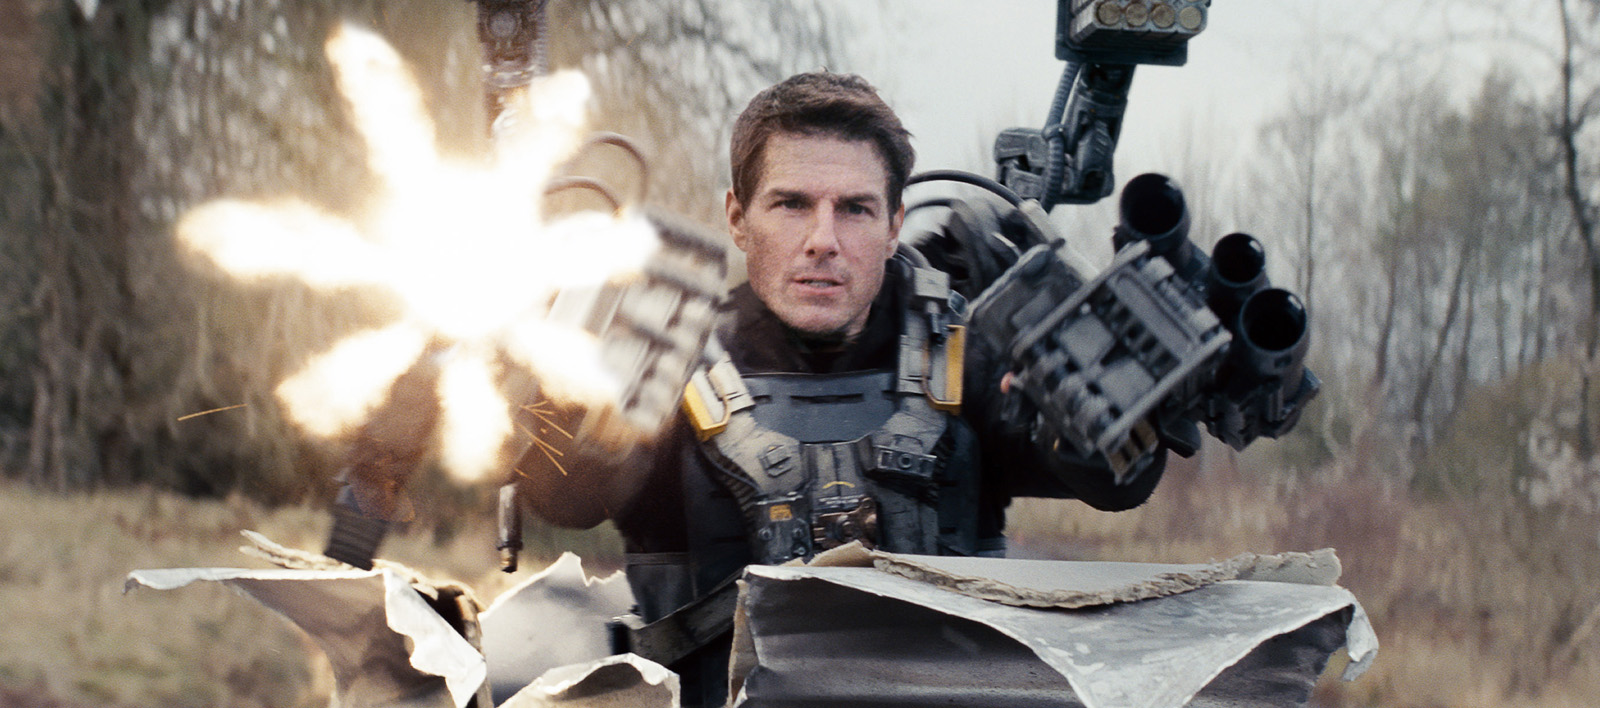 Major Bill Cage (Edge of Tomorrow)